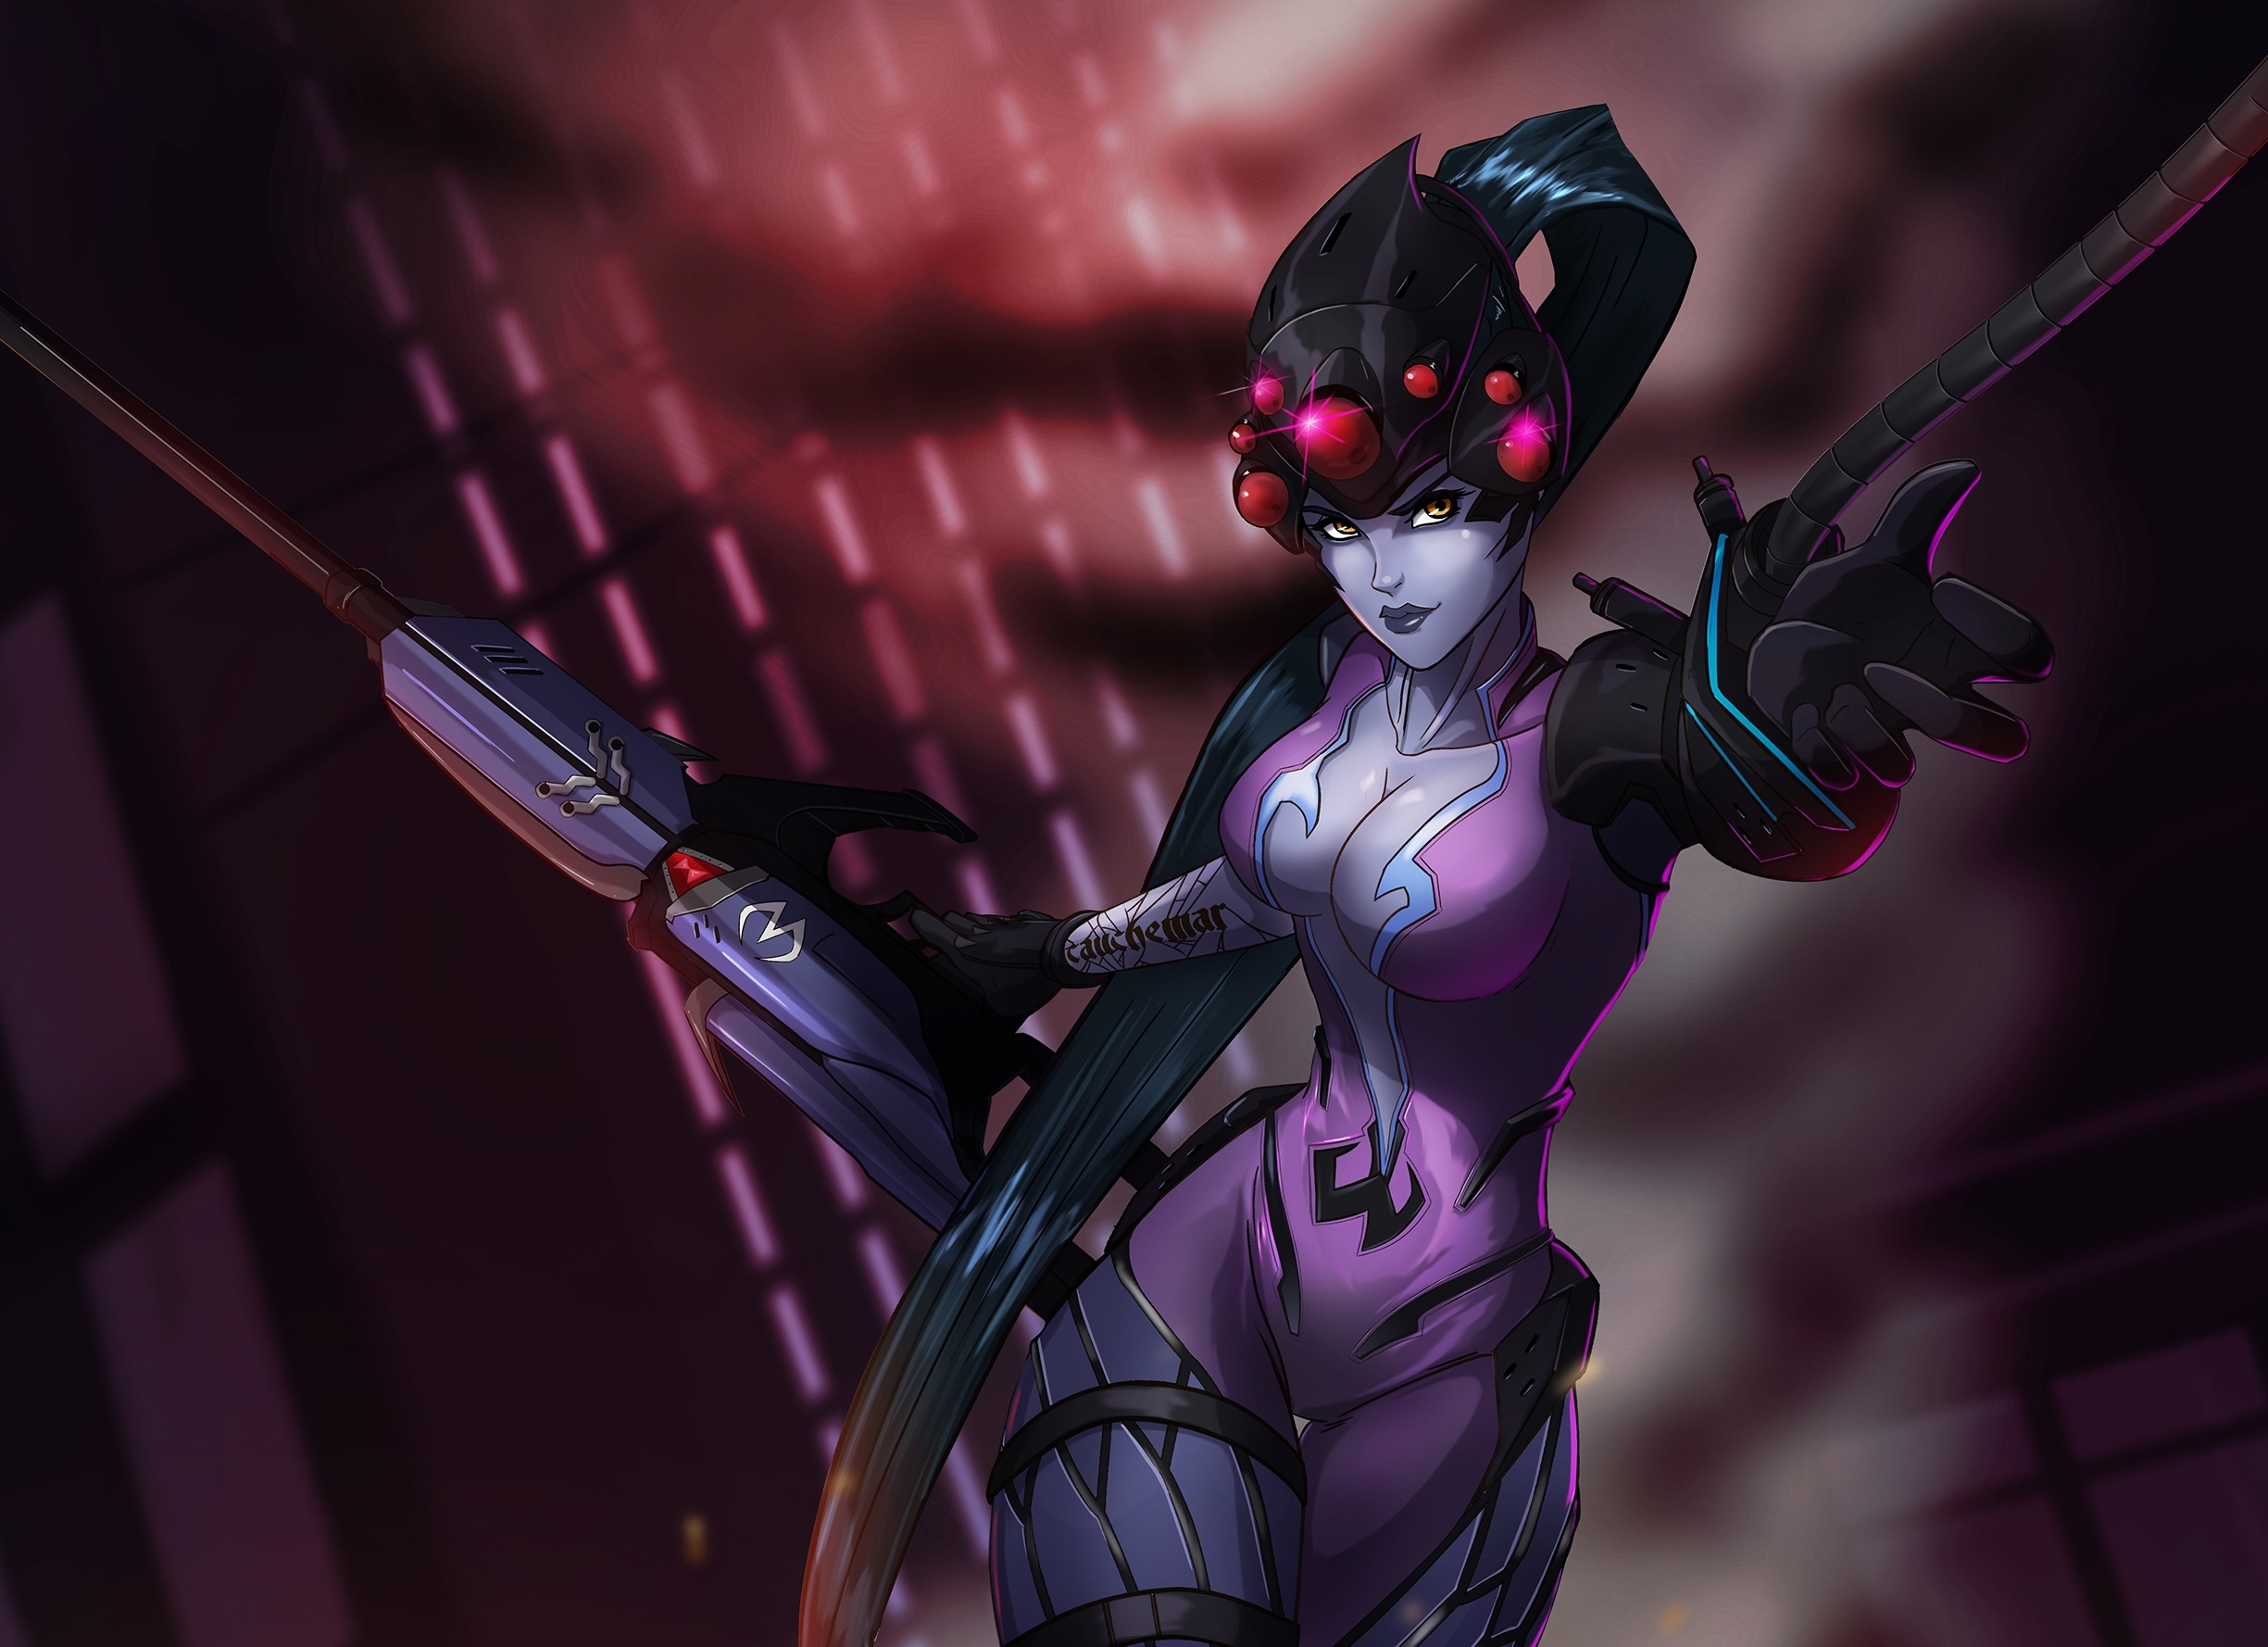 widowmaker overwatch wallpaper 1920x1080 - photo #40